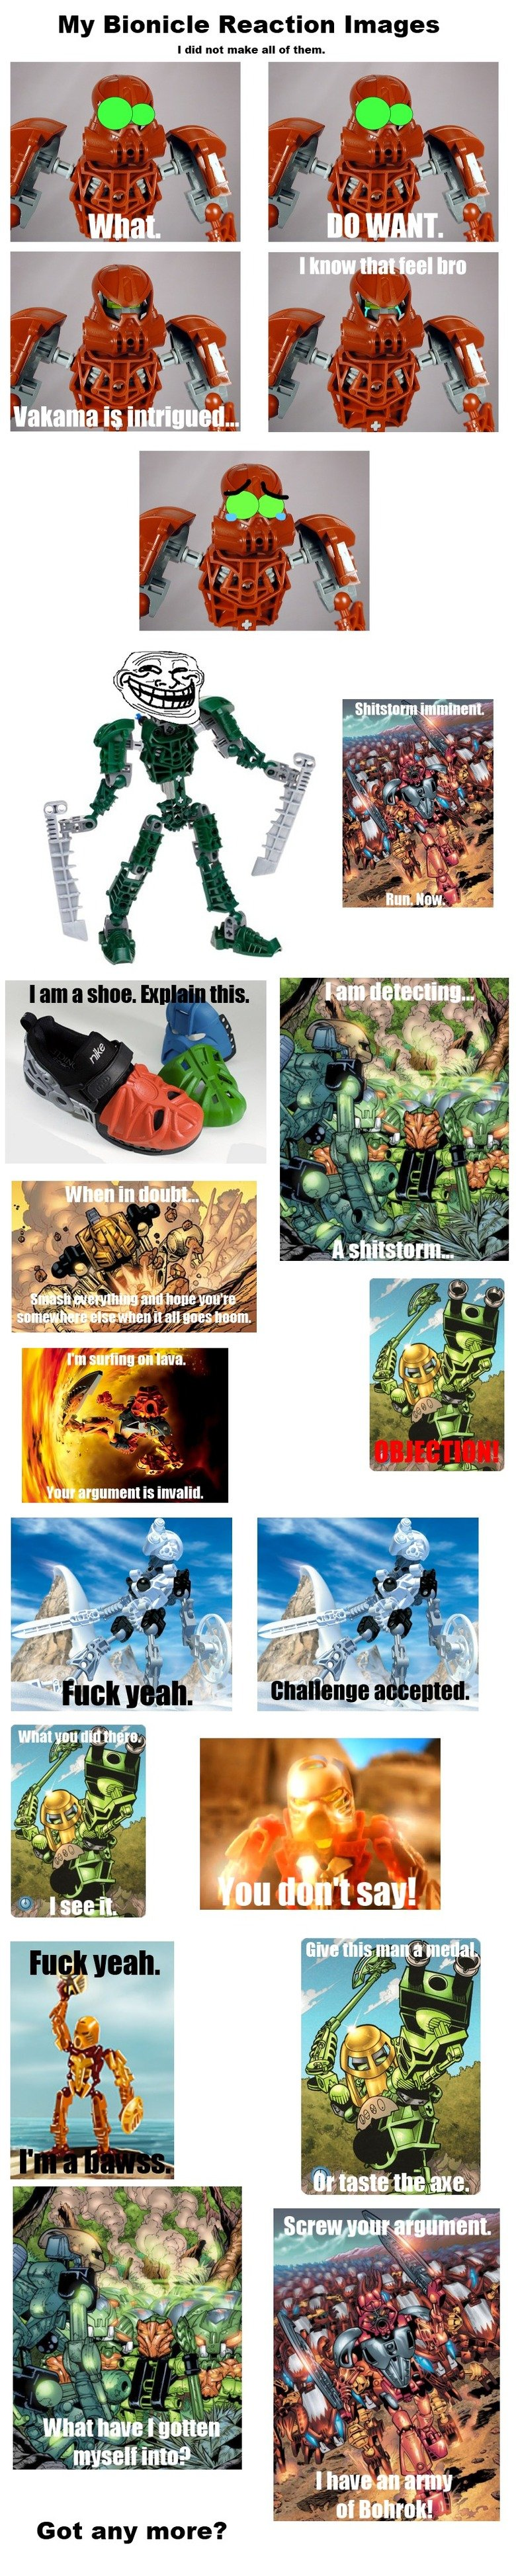 """Bionicle Reaction images. If you liked this, take a look at these! . My Bionicle Reaction Images I did not make all of """"lam. Got any more?"""